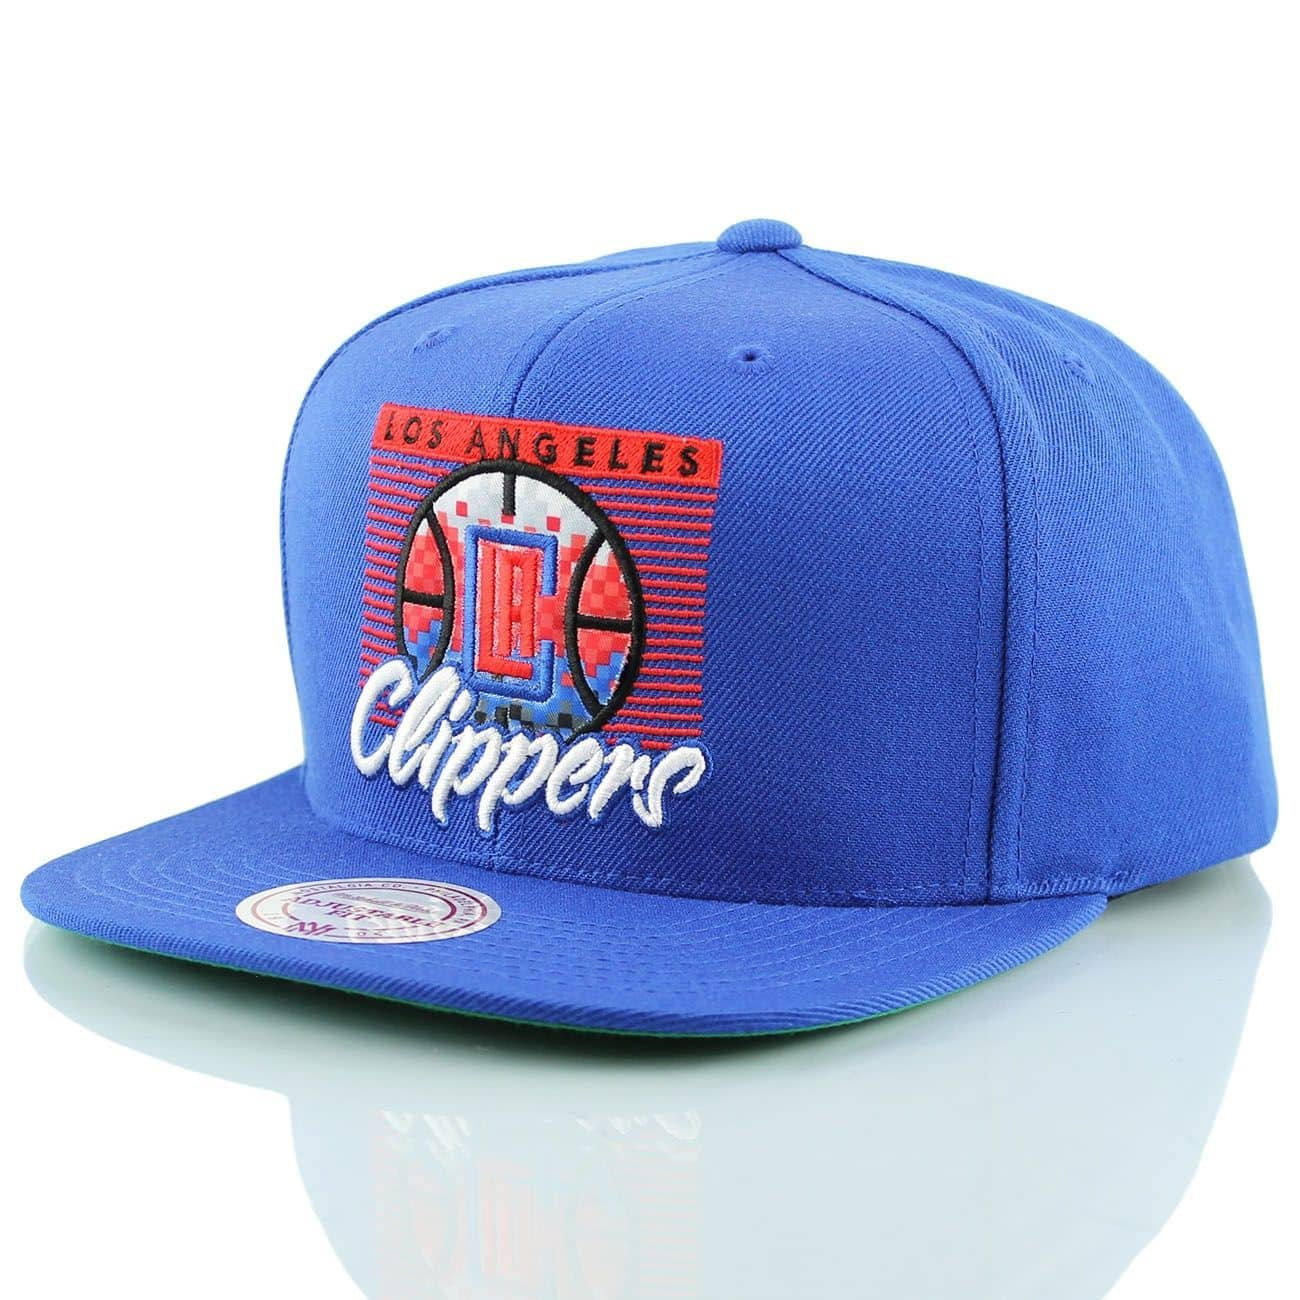 883047754ca Mitchell   Ness Los Angeles Clippers Easy 3 Digital Snapback NBA Cap Blue